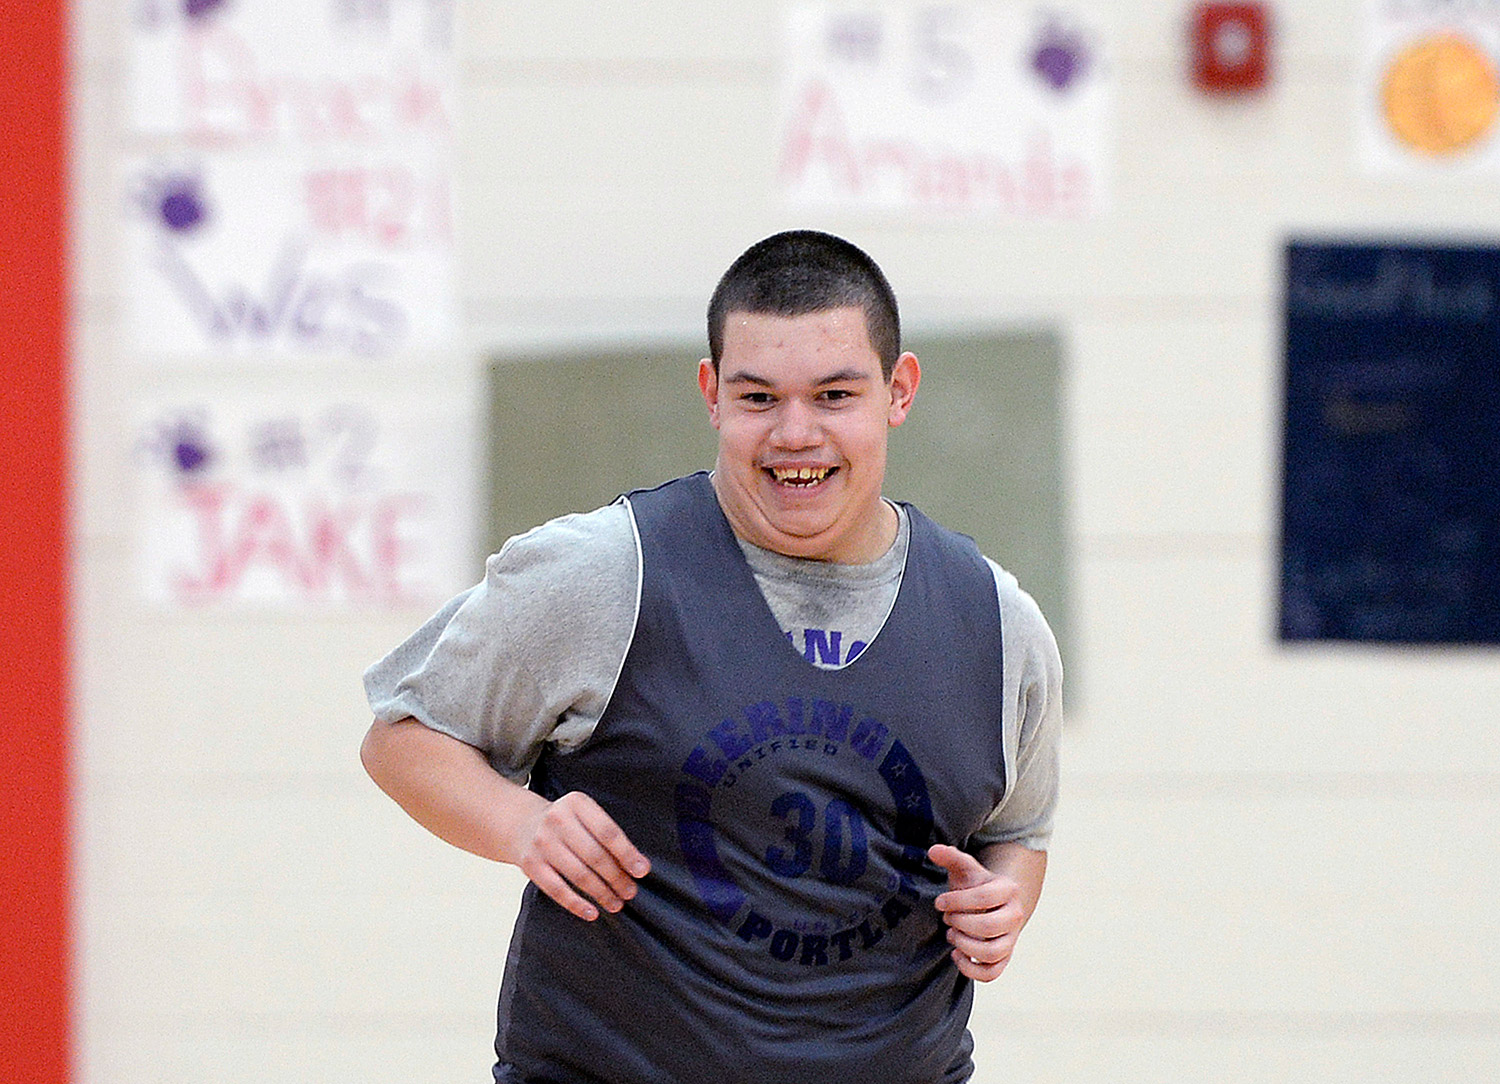 Portland/Deering's Christian Perez is all smiles after scoring a basket in action against Lisbon.